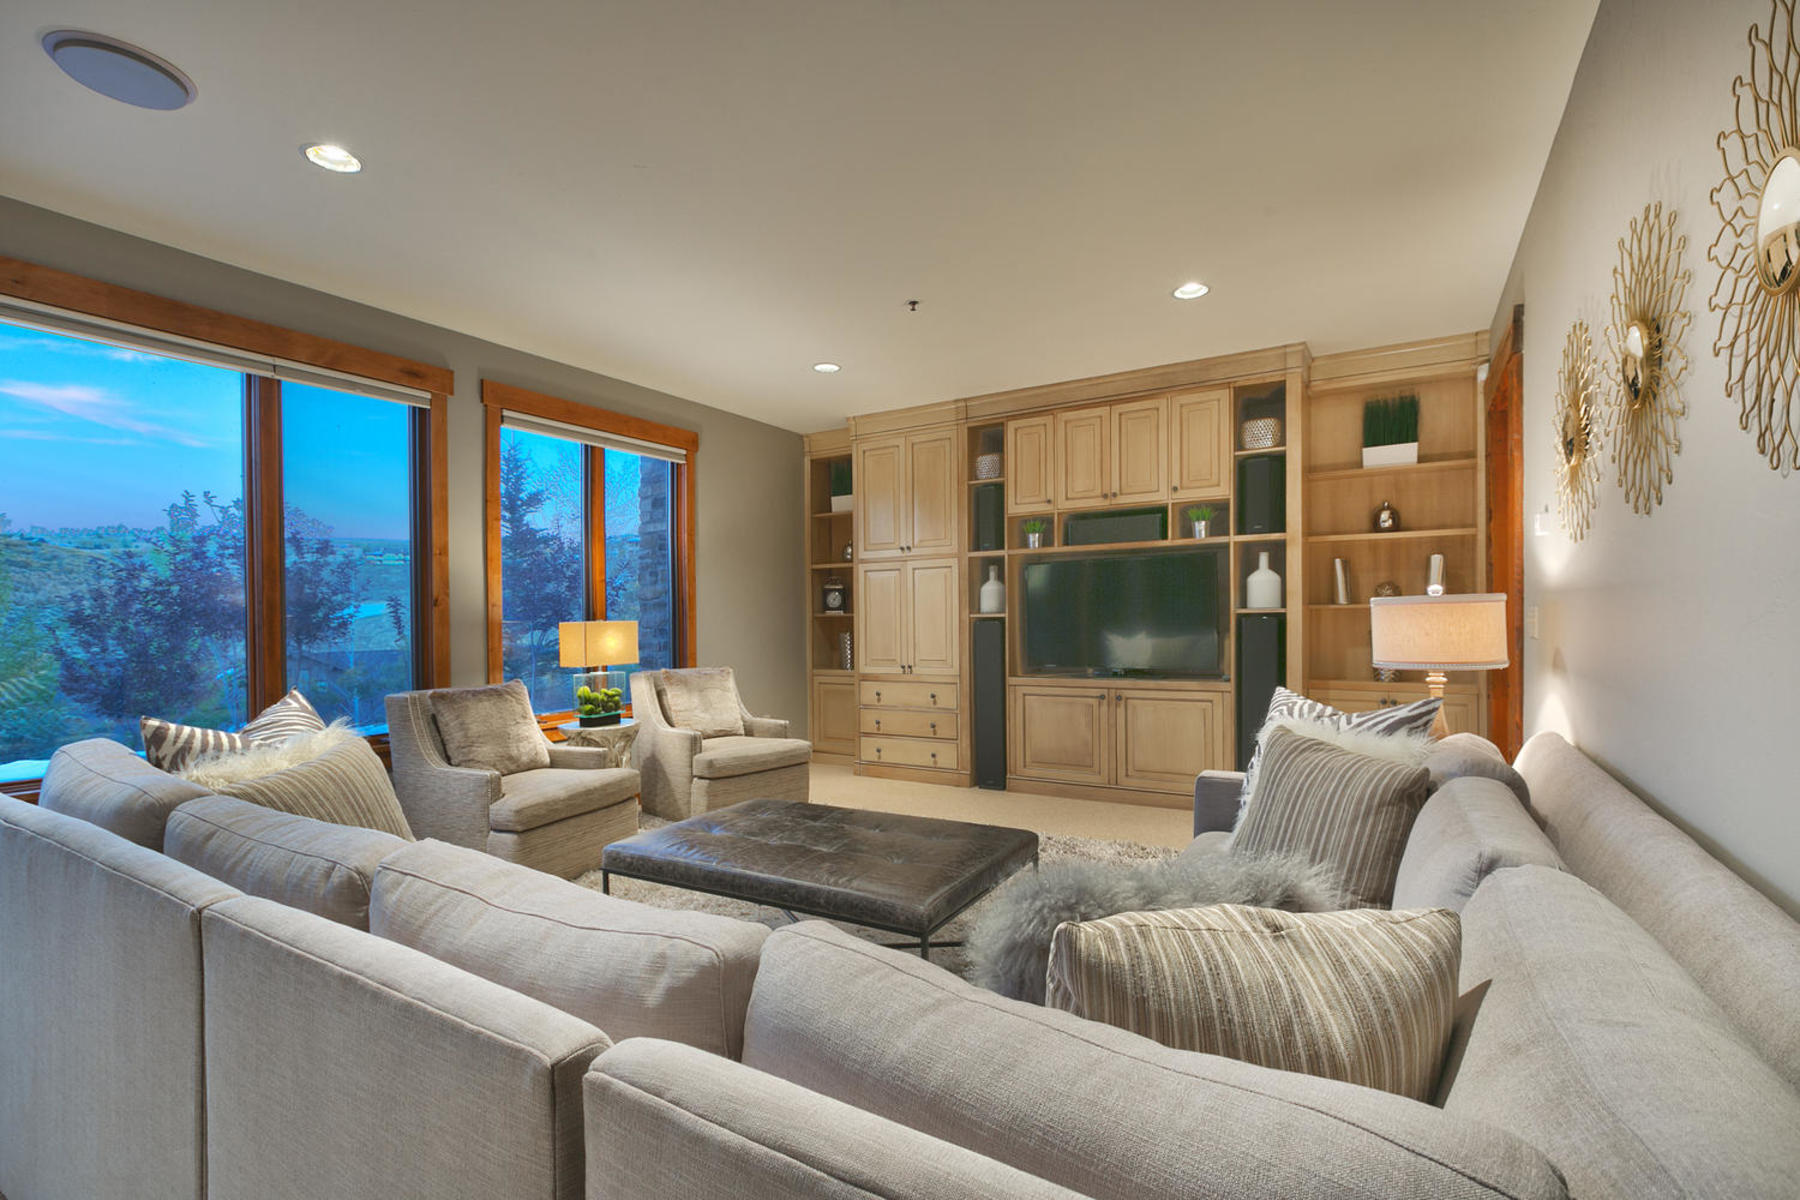 Additional photo for property listing at Fabulous Golf Club Cabin in Promontory 8584 Ranch Club Ct Park City, Utah 84098 United States